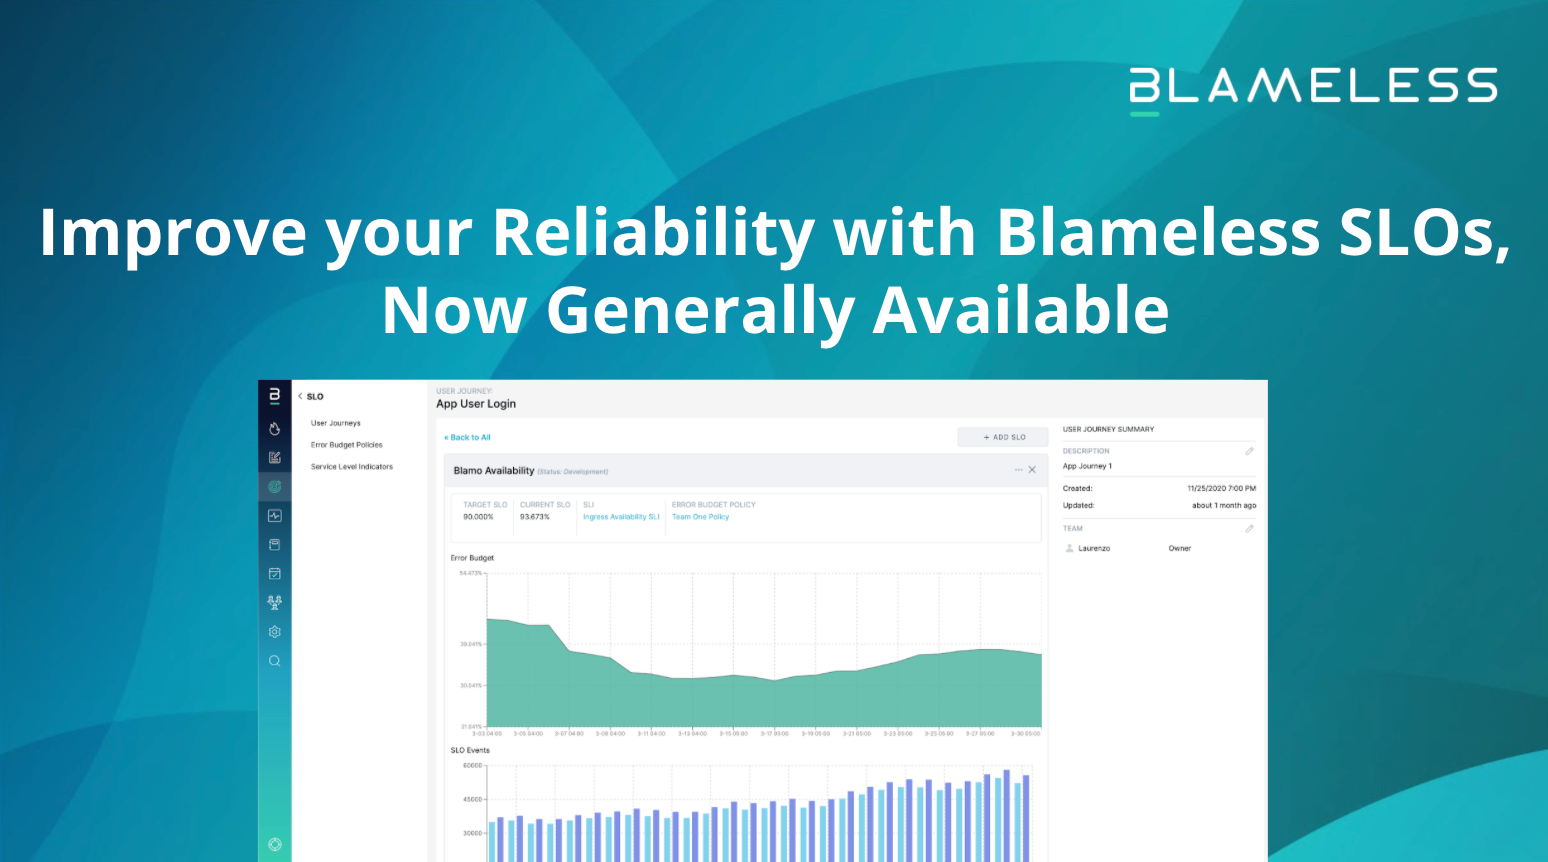 Improve your Reliability with Blameless SLOs, Now Generally Available